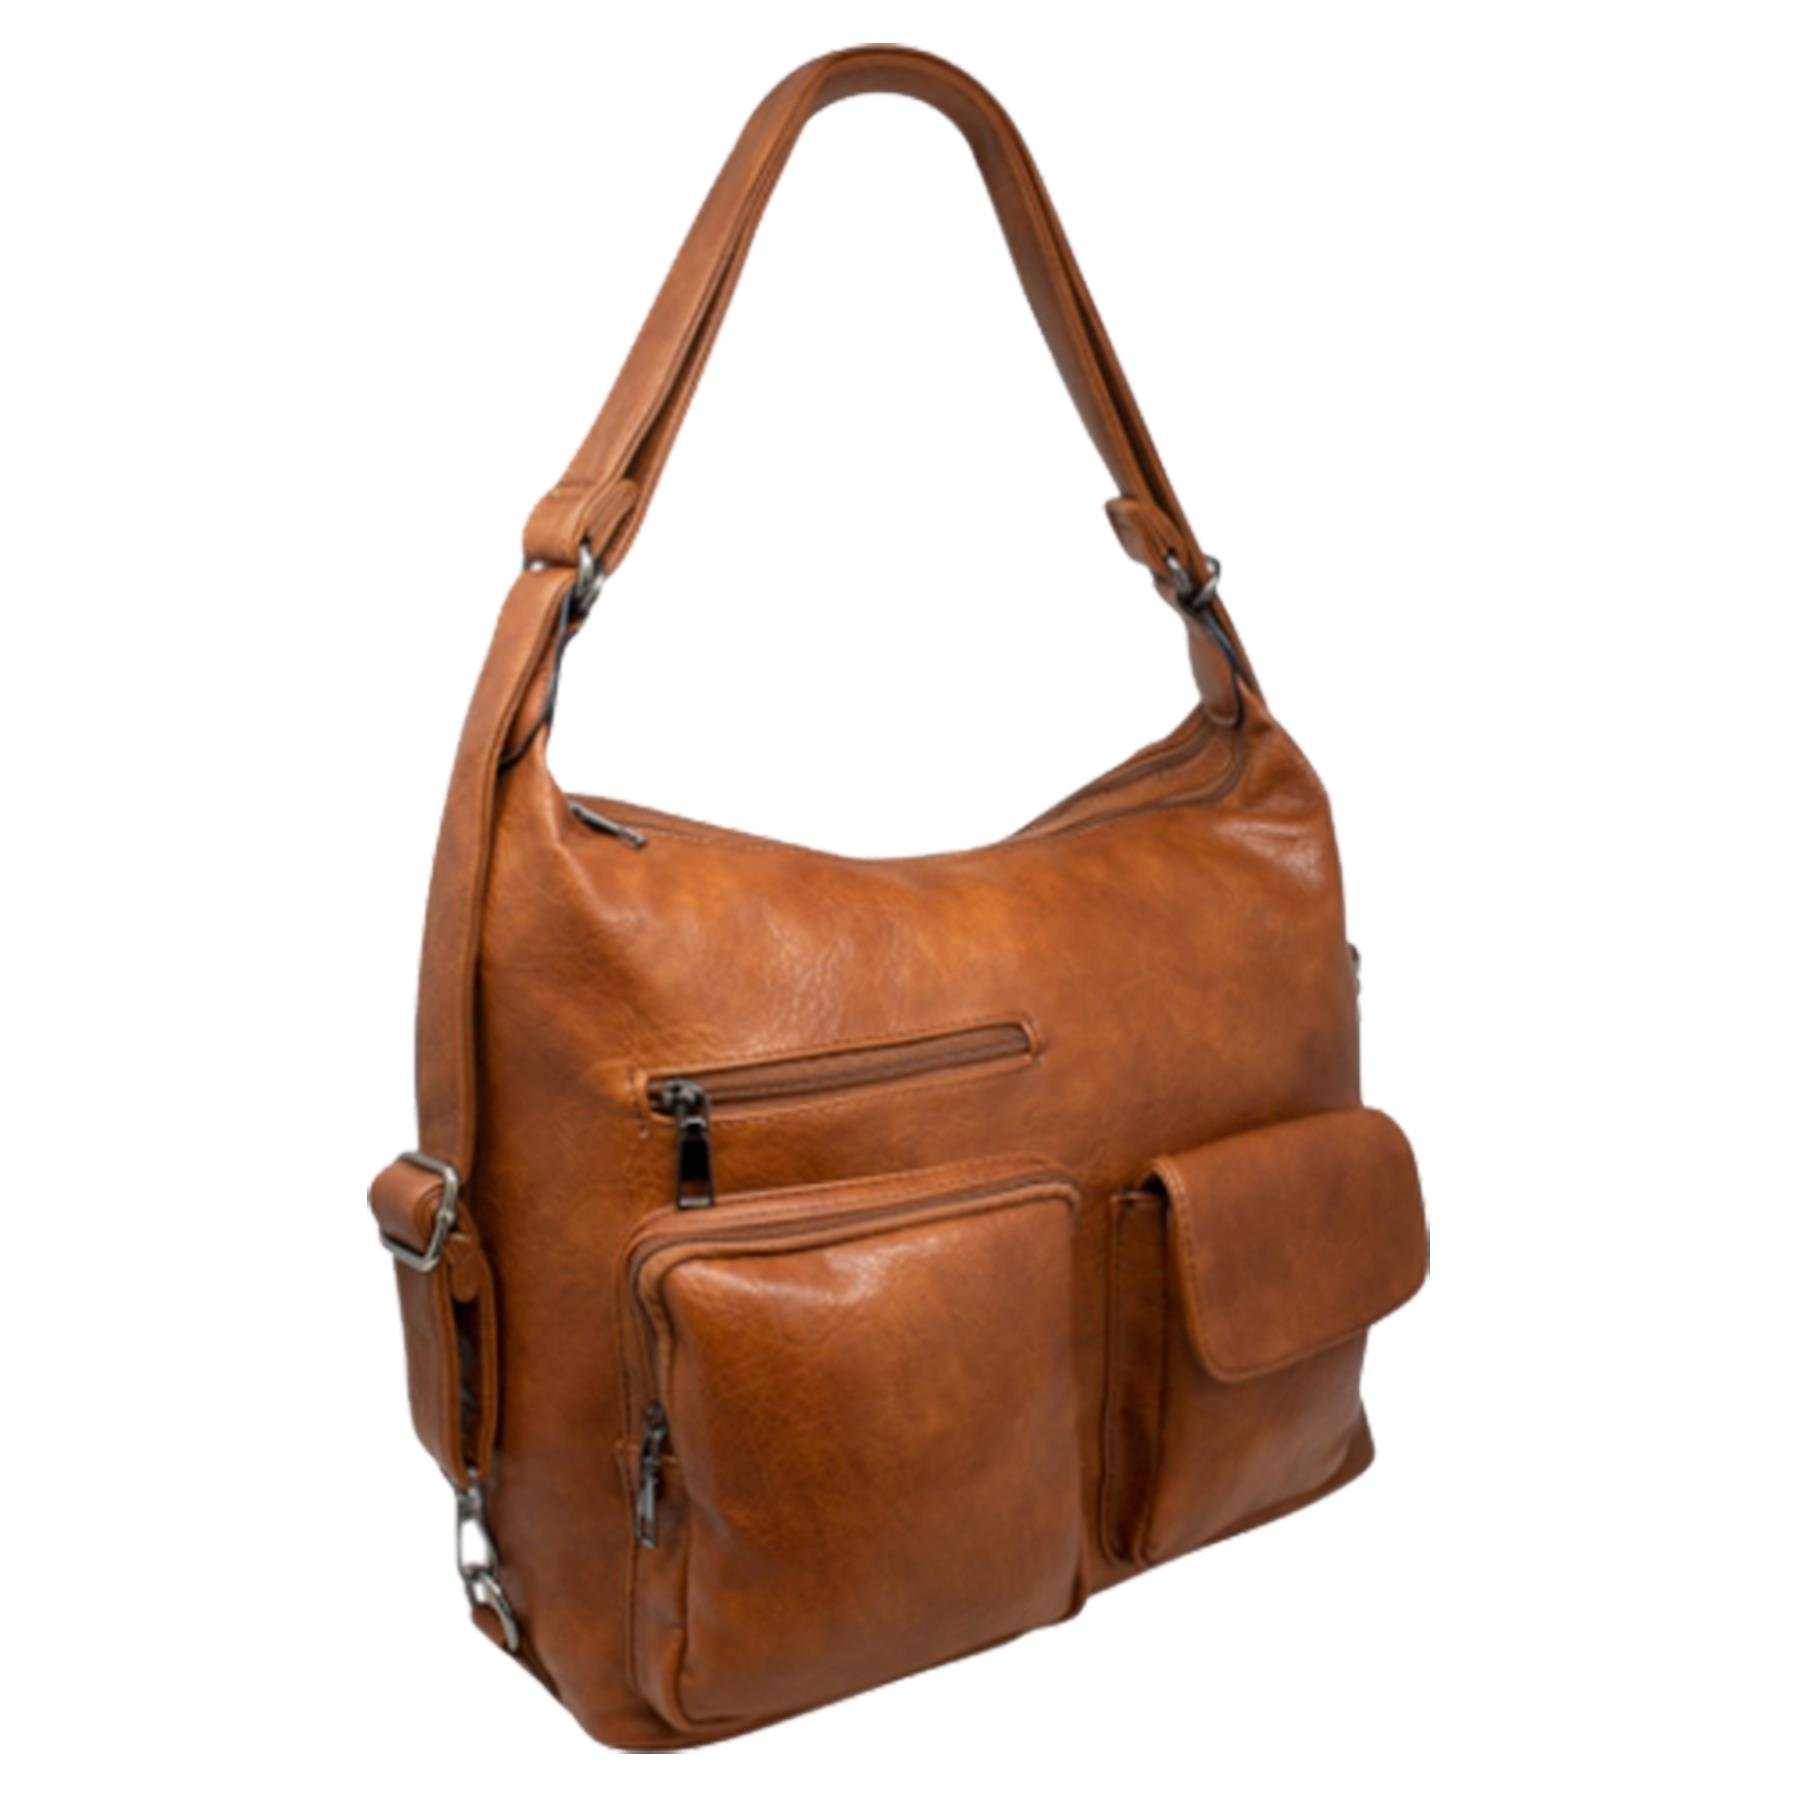 New-Women-s-Men-s-Faux-Leather-Multi-Purpose-Crossbody-Messenger-Bag thumbnail 7